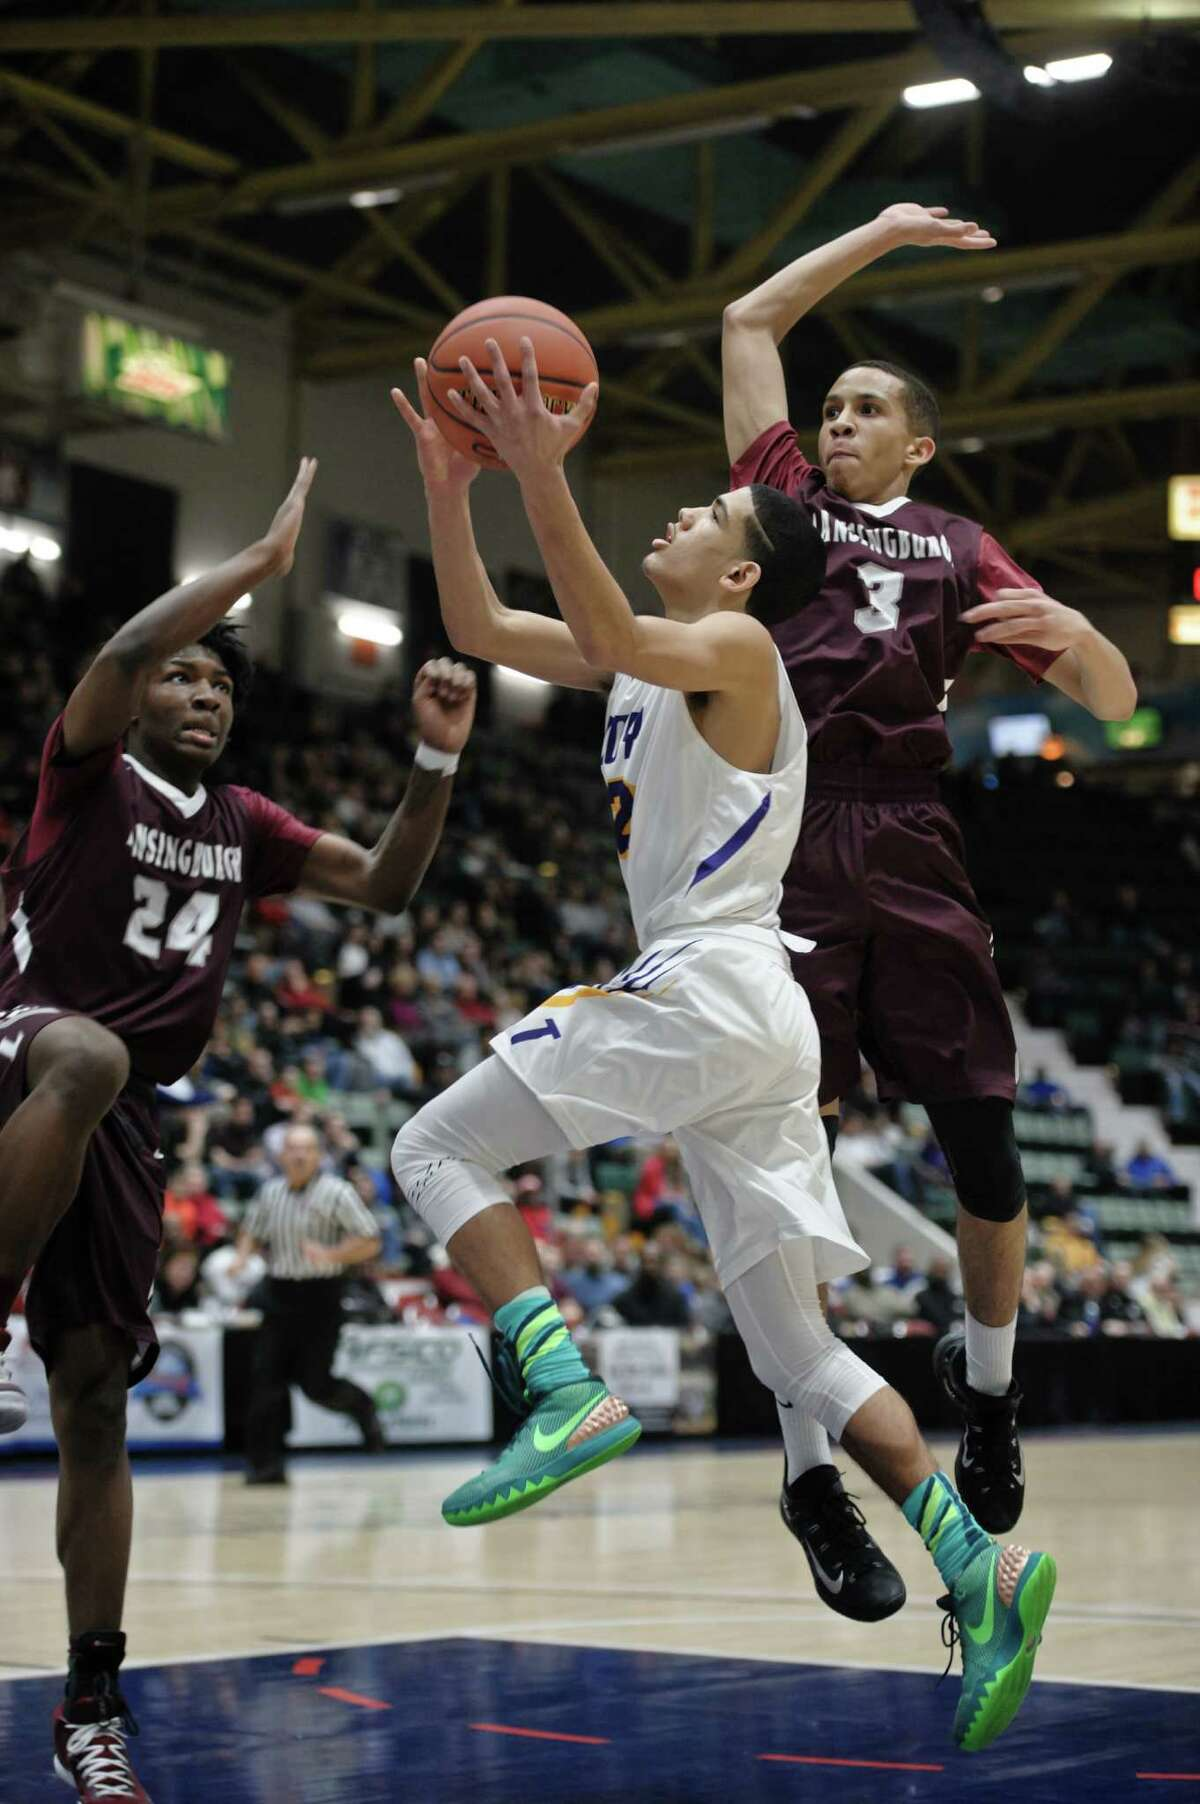 Troy's Daniel Buie during the Section II Class A final against Lansingburgh Friday, February 26th, 2016 at the Glens Falls Civic Center. Photo By Eric Jenks, for the Times Union